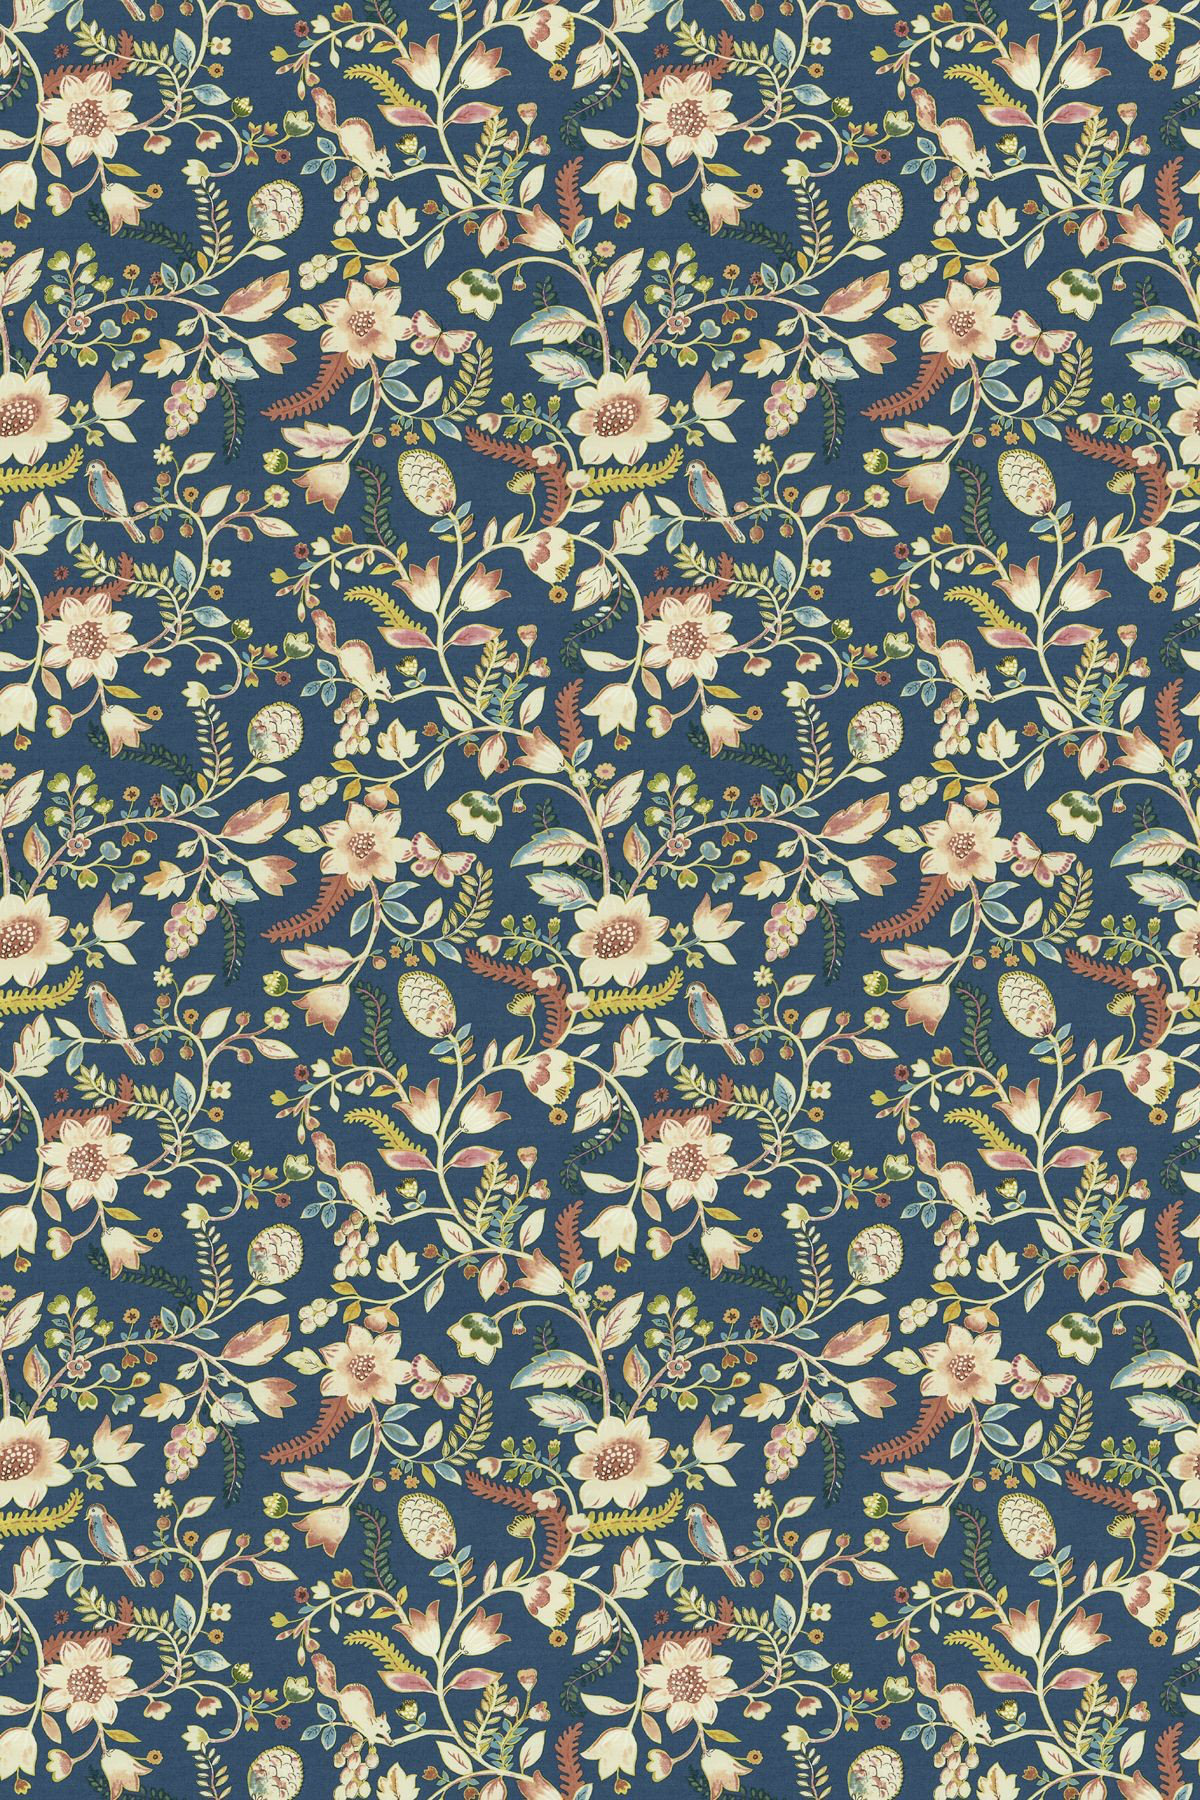 Image of Blendworth Fabric Daydreamer, Daydream/005